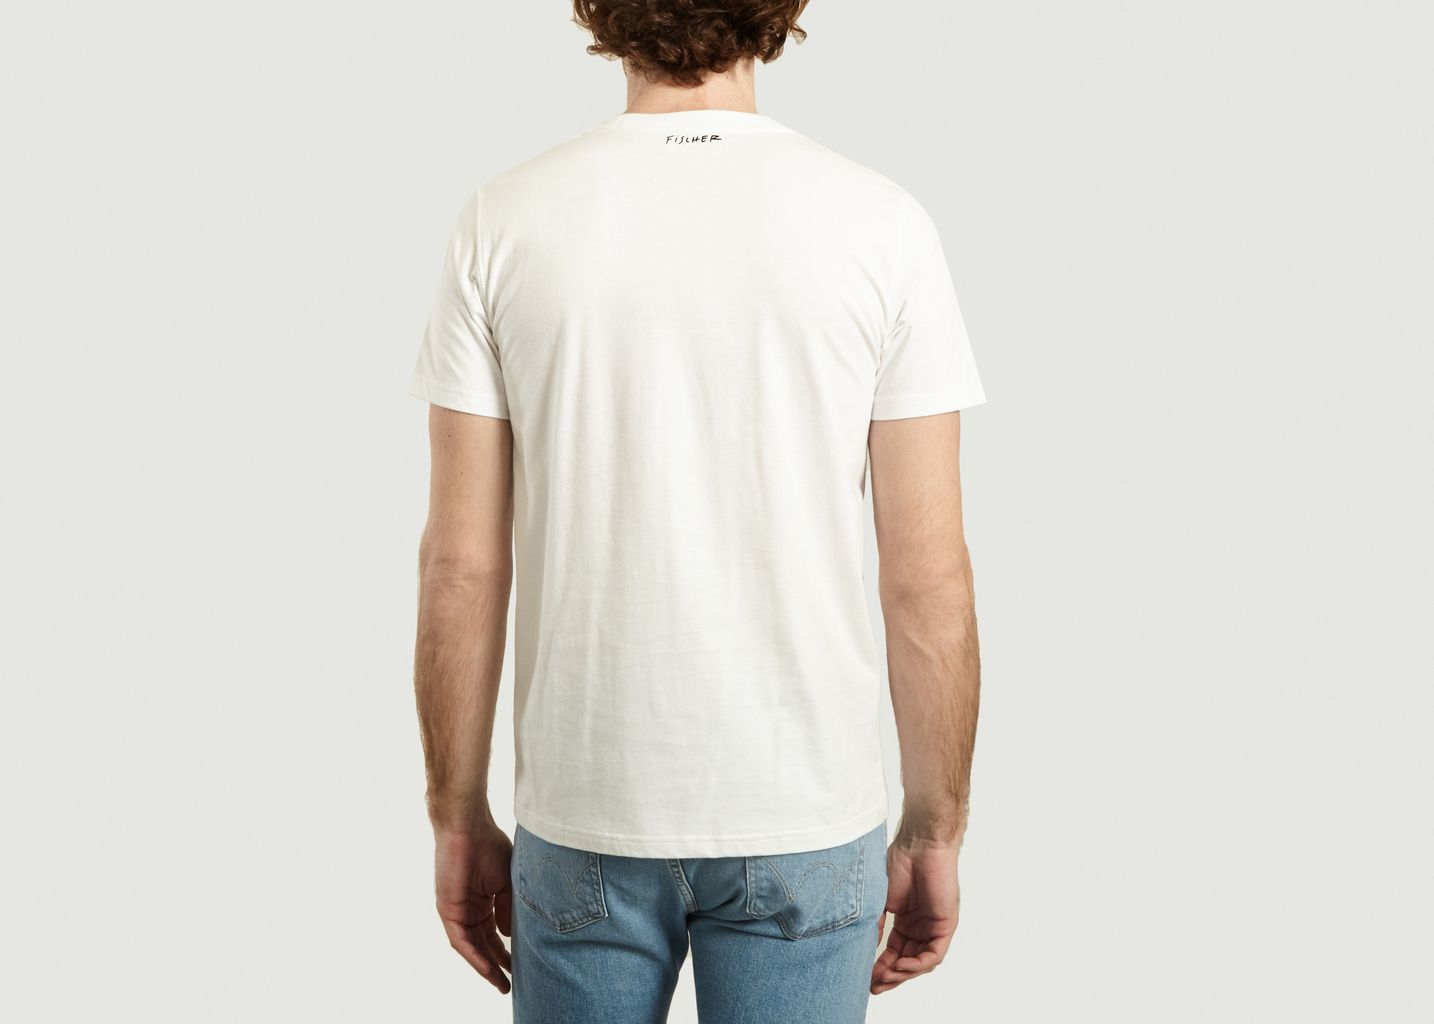 T-Shirt View Norse Projects x Jeremie Fischer - Norse Projects